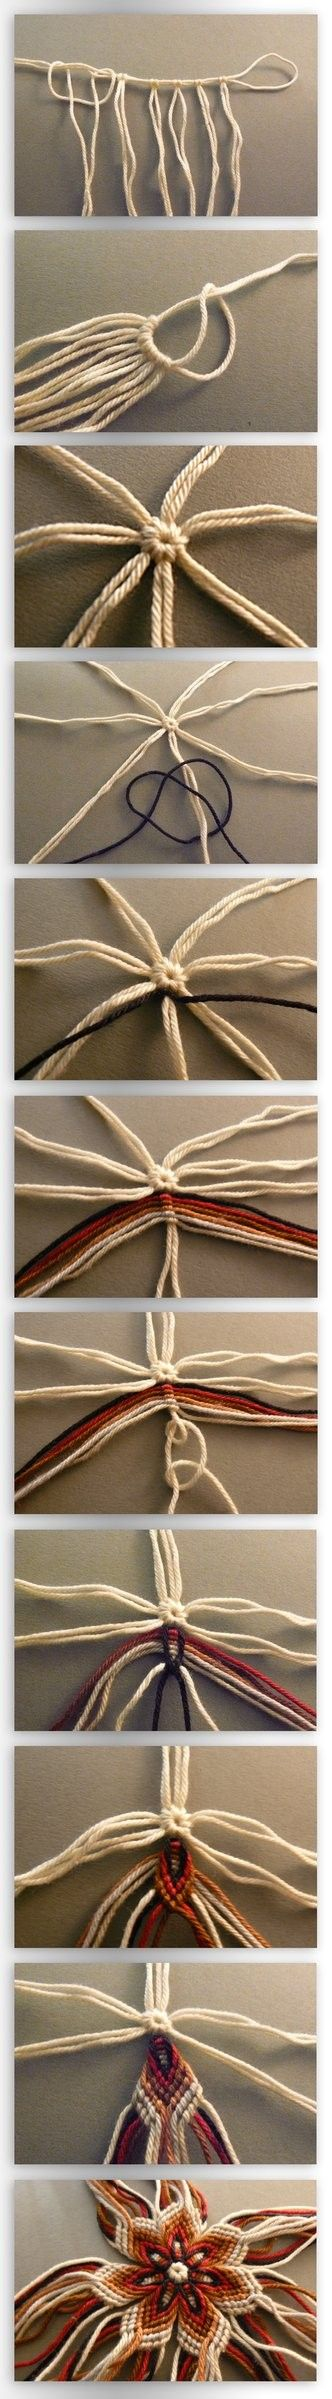 Flower of thread  ~Cool, but I am not sure what the usage would be, so I am thinking this would be great to recycle denim or Tshirts using thick enough strips that you end up with a potholder~